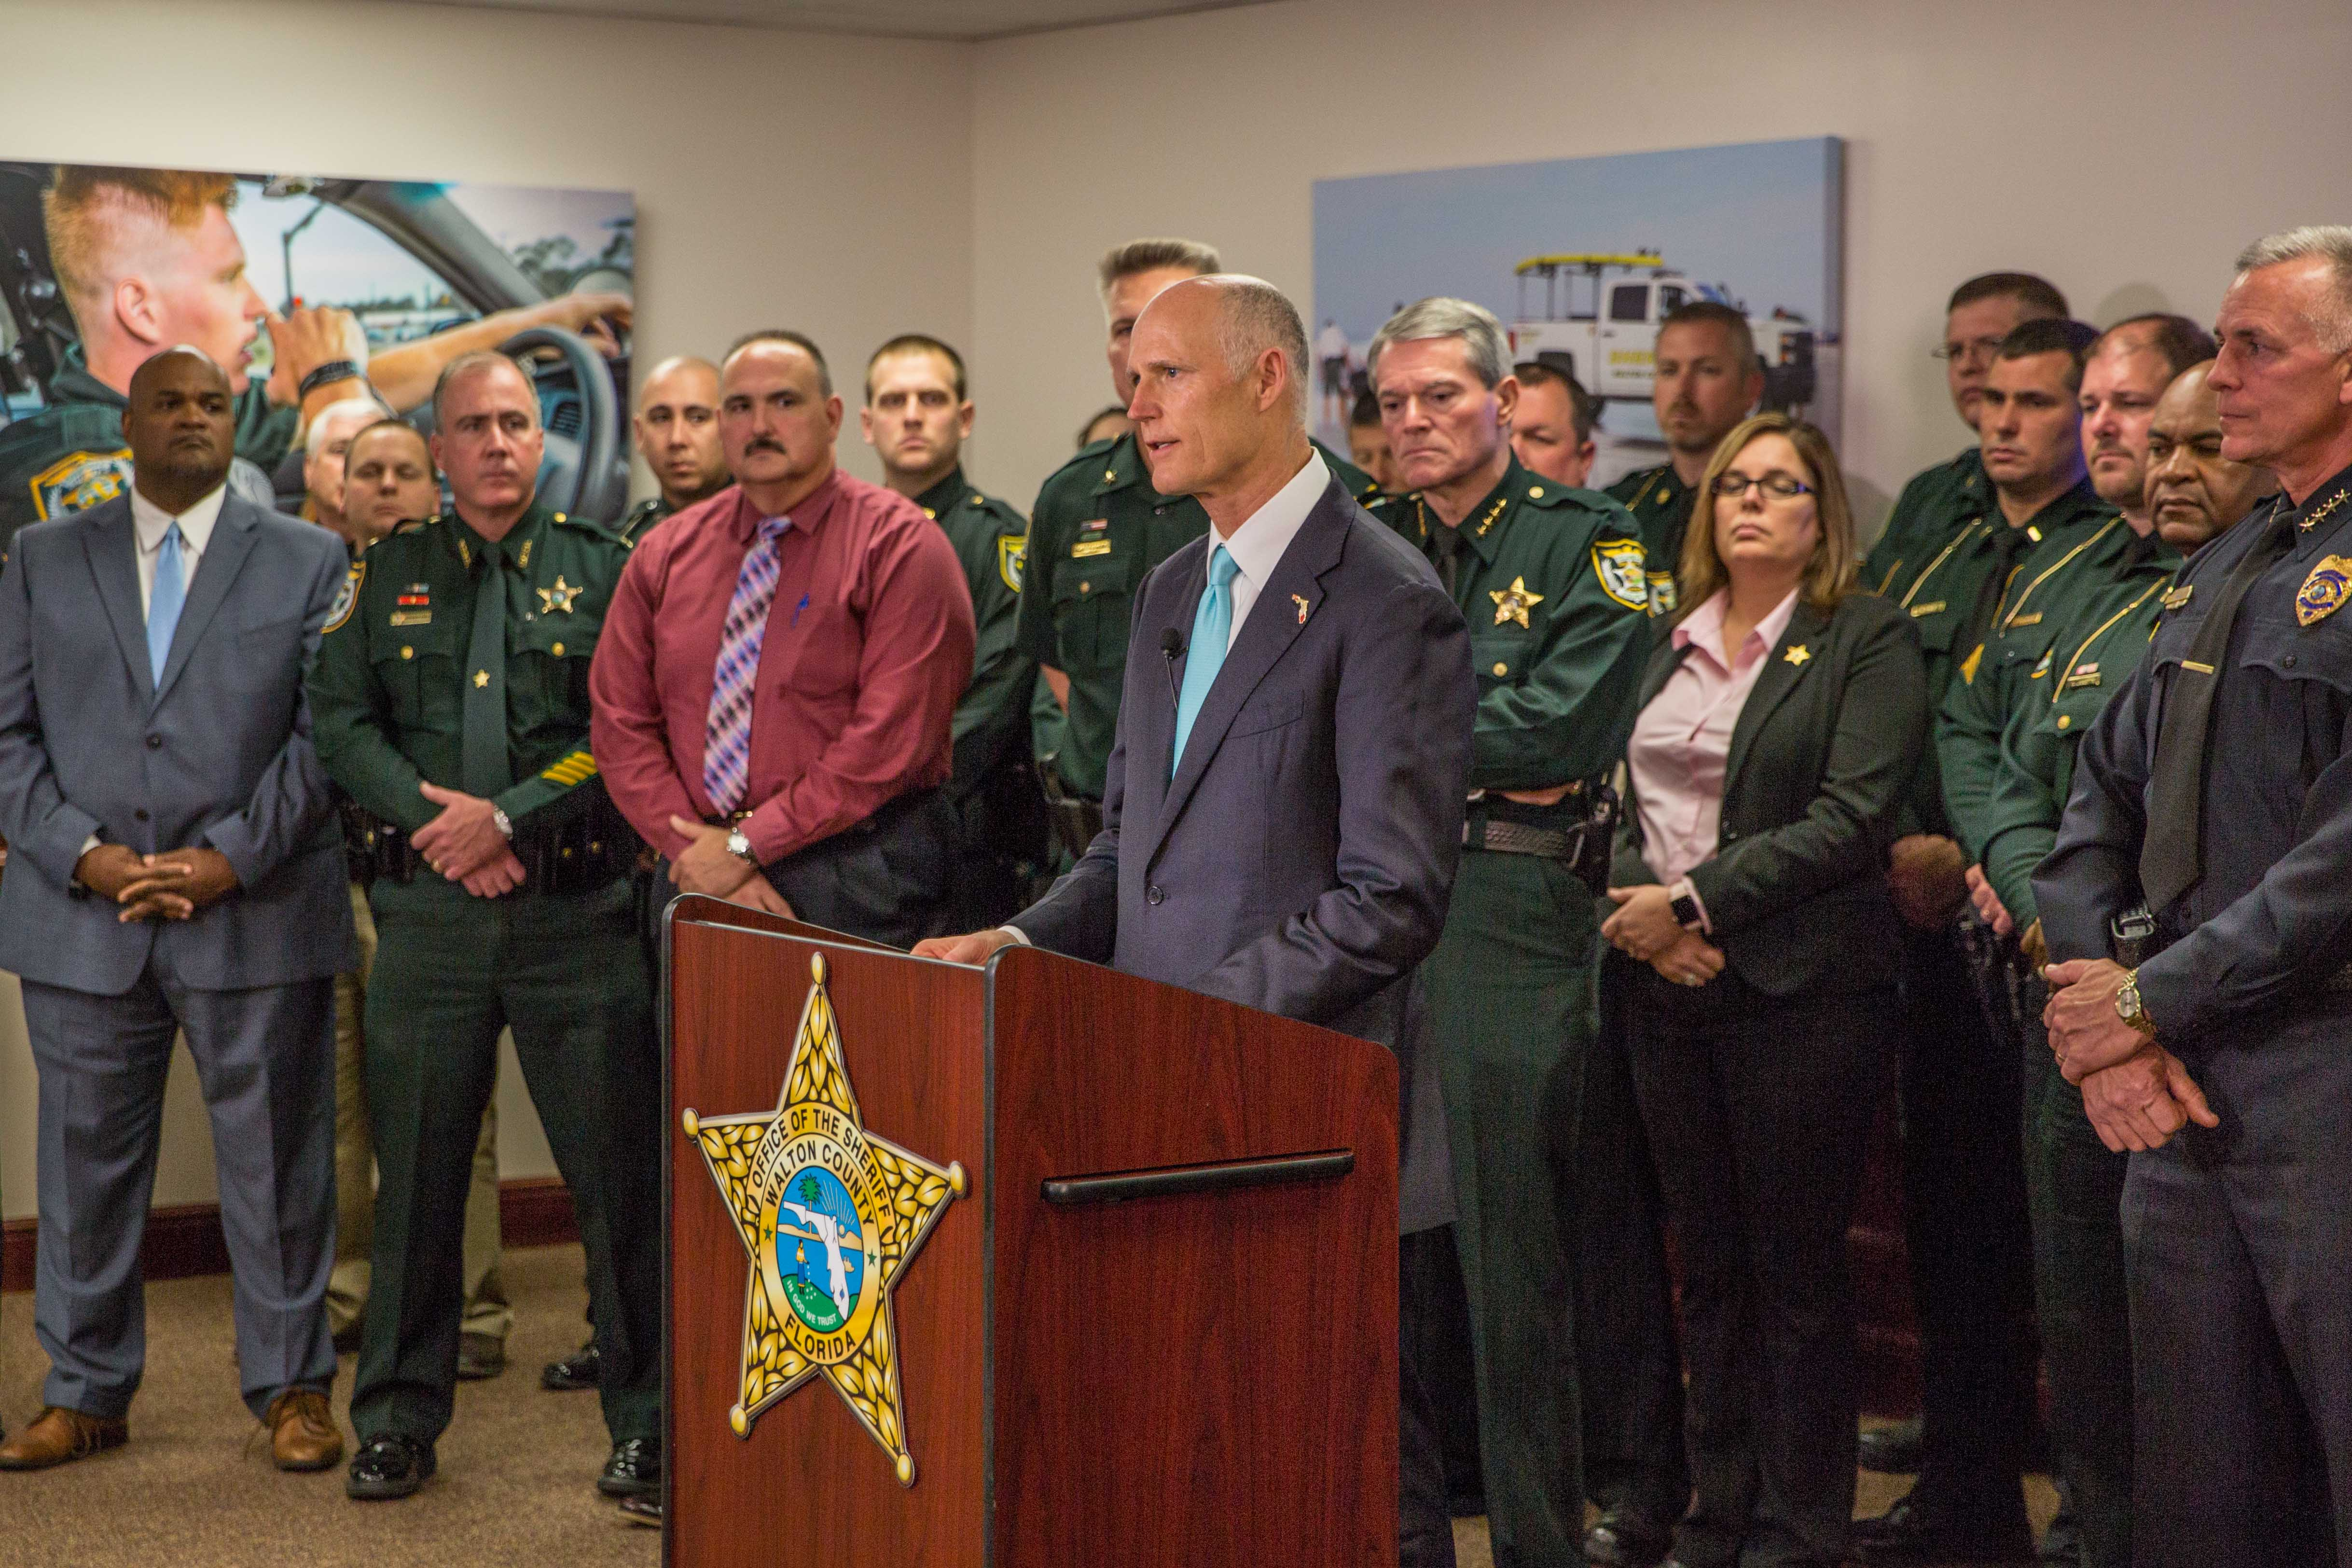 Florida Governor Scott standing with county sheriffs